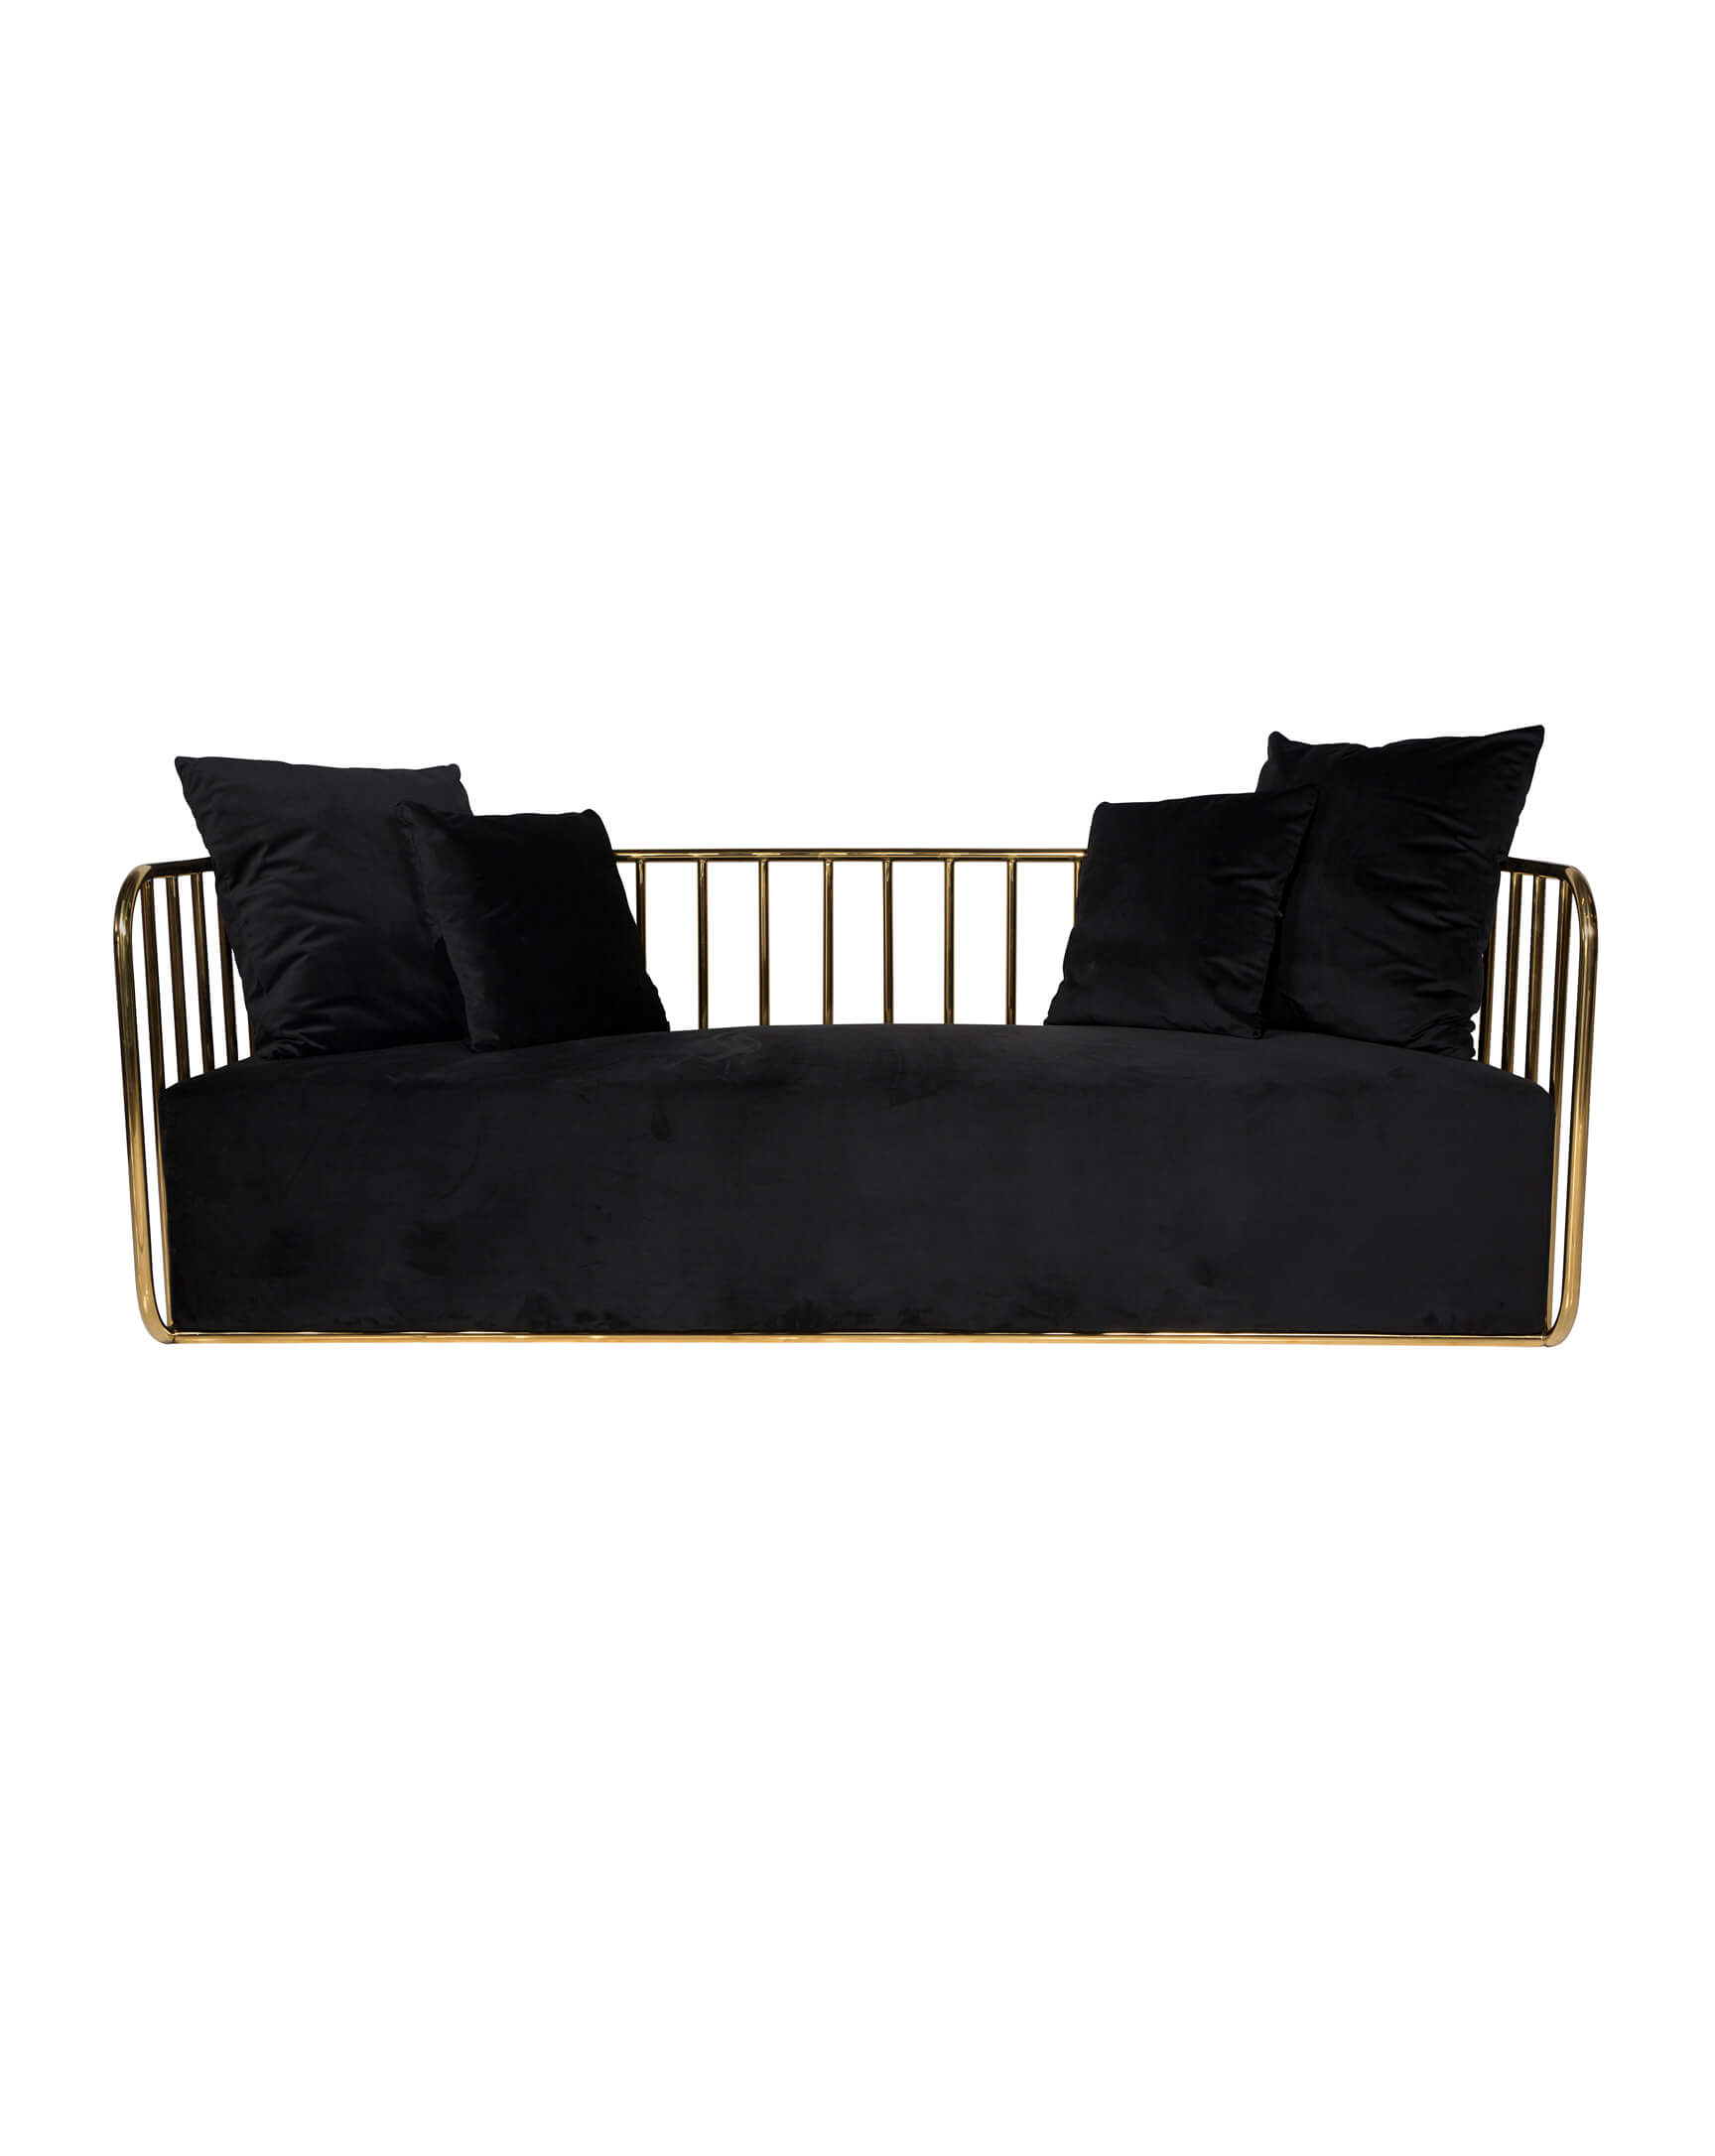 Lounge Black Gold Calle Ocho Sofa